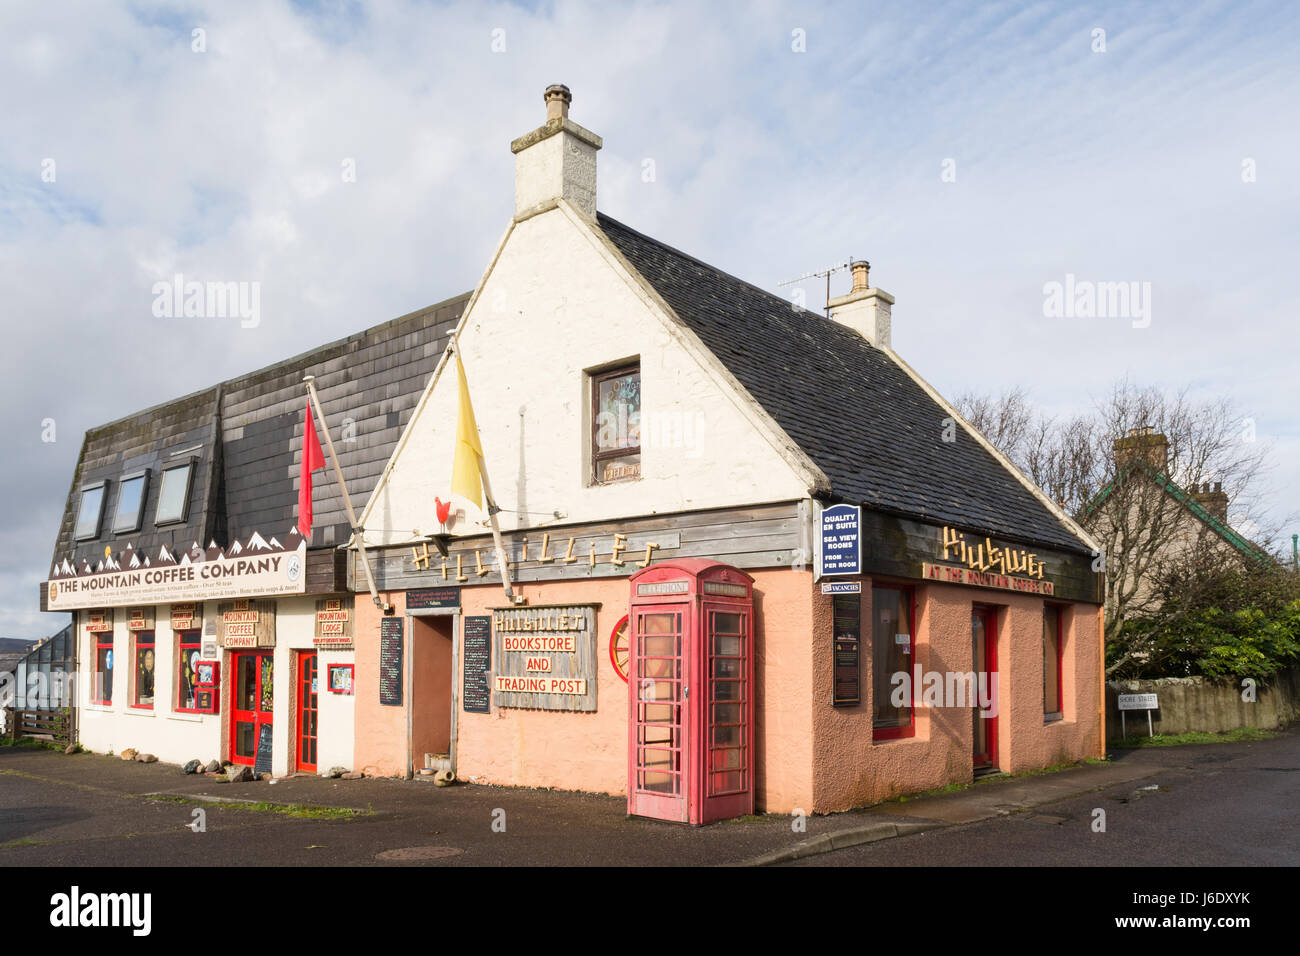 Hillibillies bookstore and Trading Post, Gairloch, Wester Ross, Scotland, UK - Stock Image